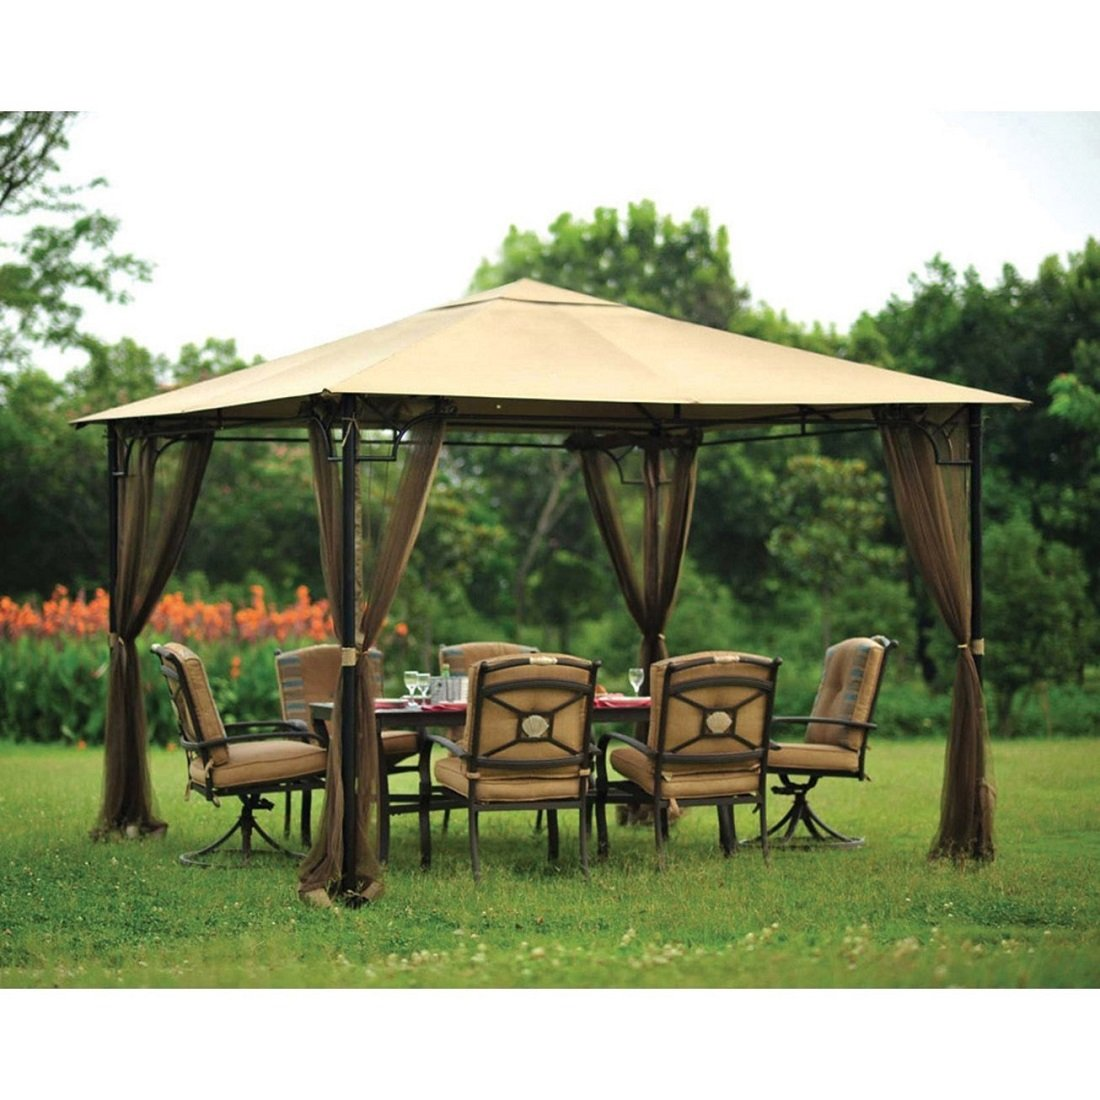 Delightful Amazon.com : Living Accents 10ft X 10ft Gazebo Netting (gazebo Sold  Separately) : Garden U0026 Outdoor